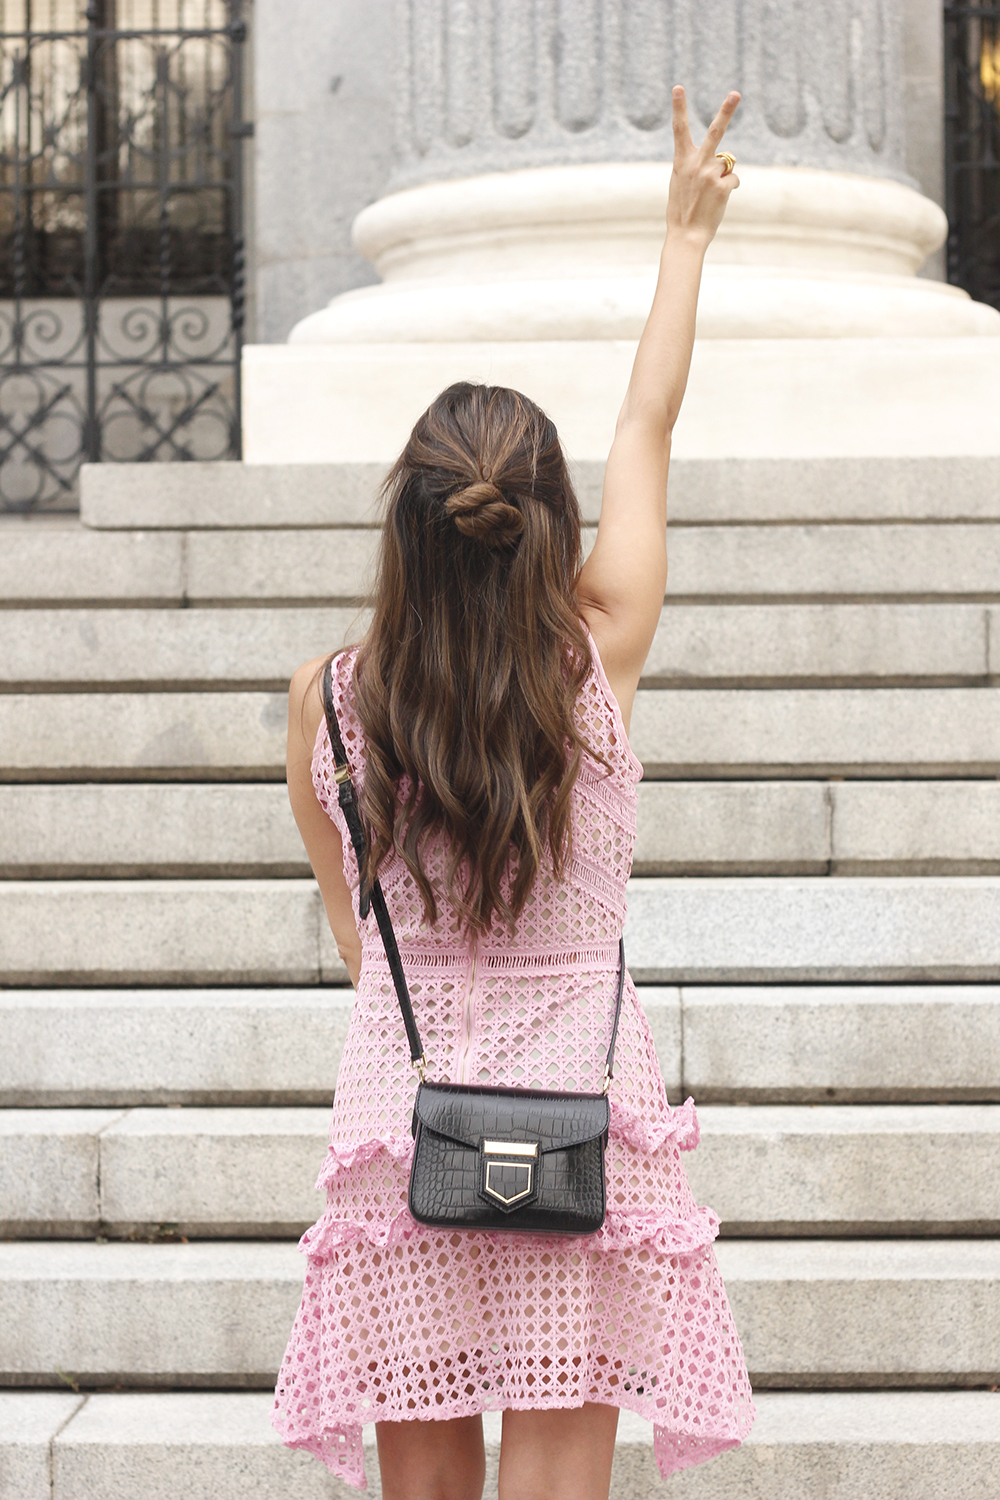 Pink dress summer givenchy bag nude heels outfit girl style17